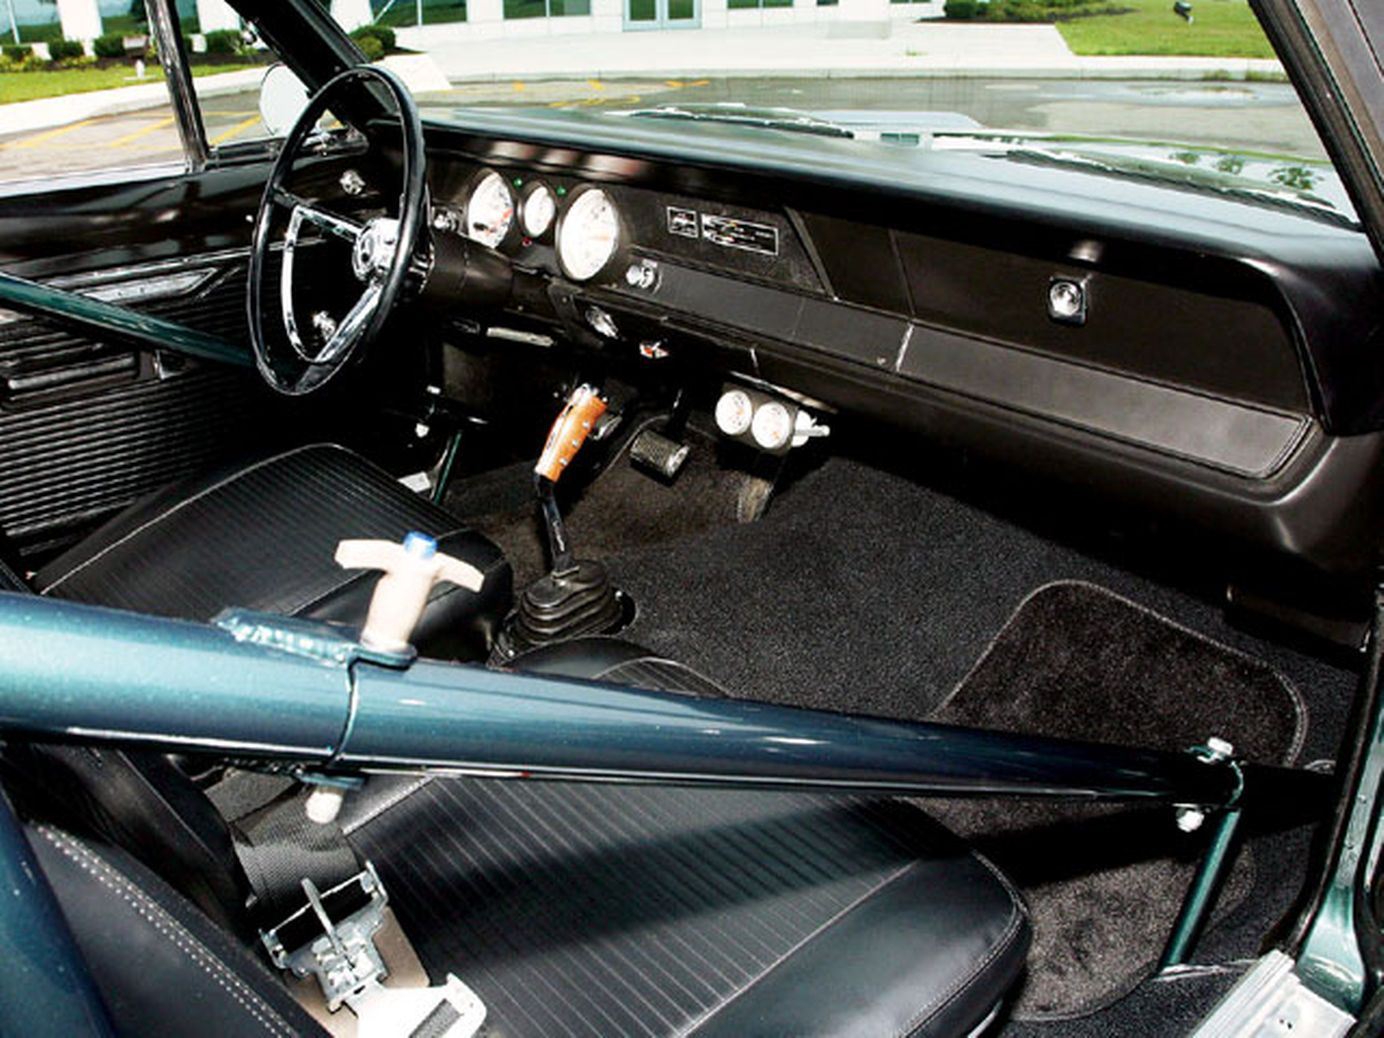 Take a look at this 833 four speed manual transmission 1967 dodge dart gt from